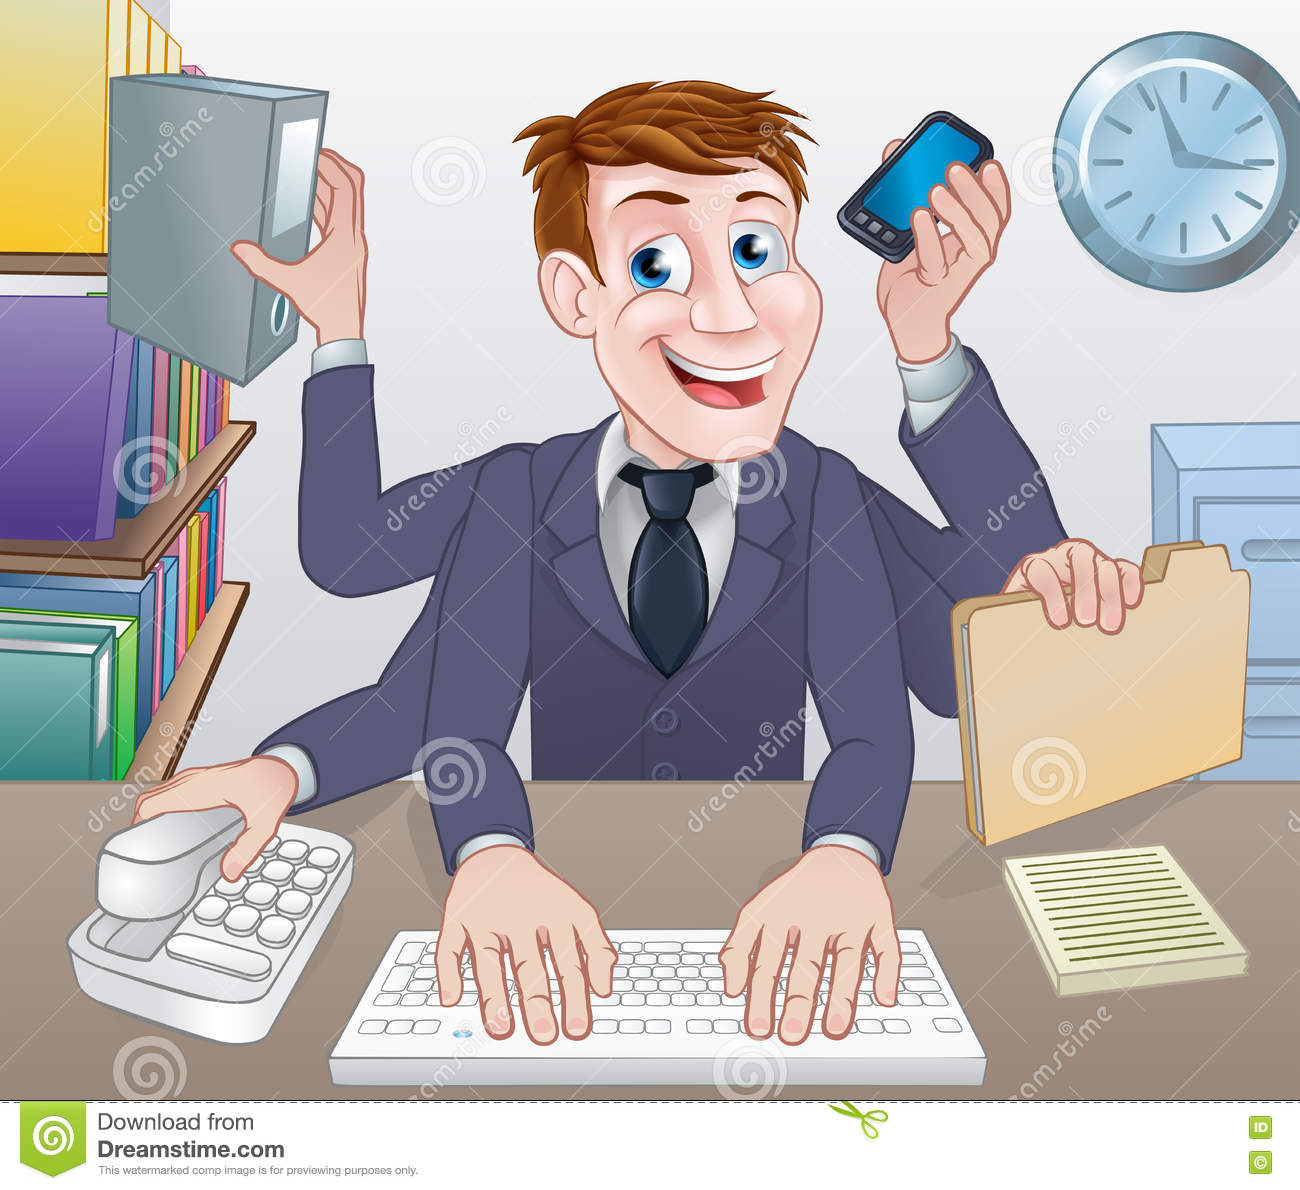 Multitasking Business Man Cartoon Stock Vector ...